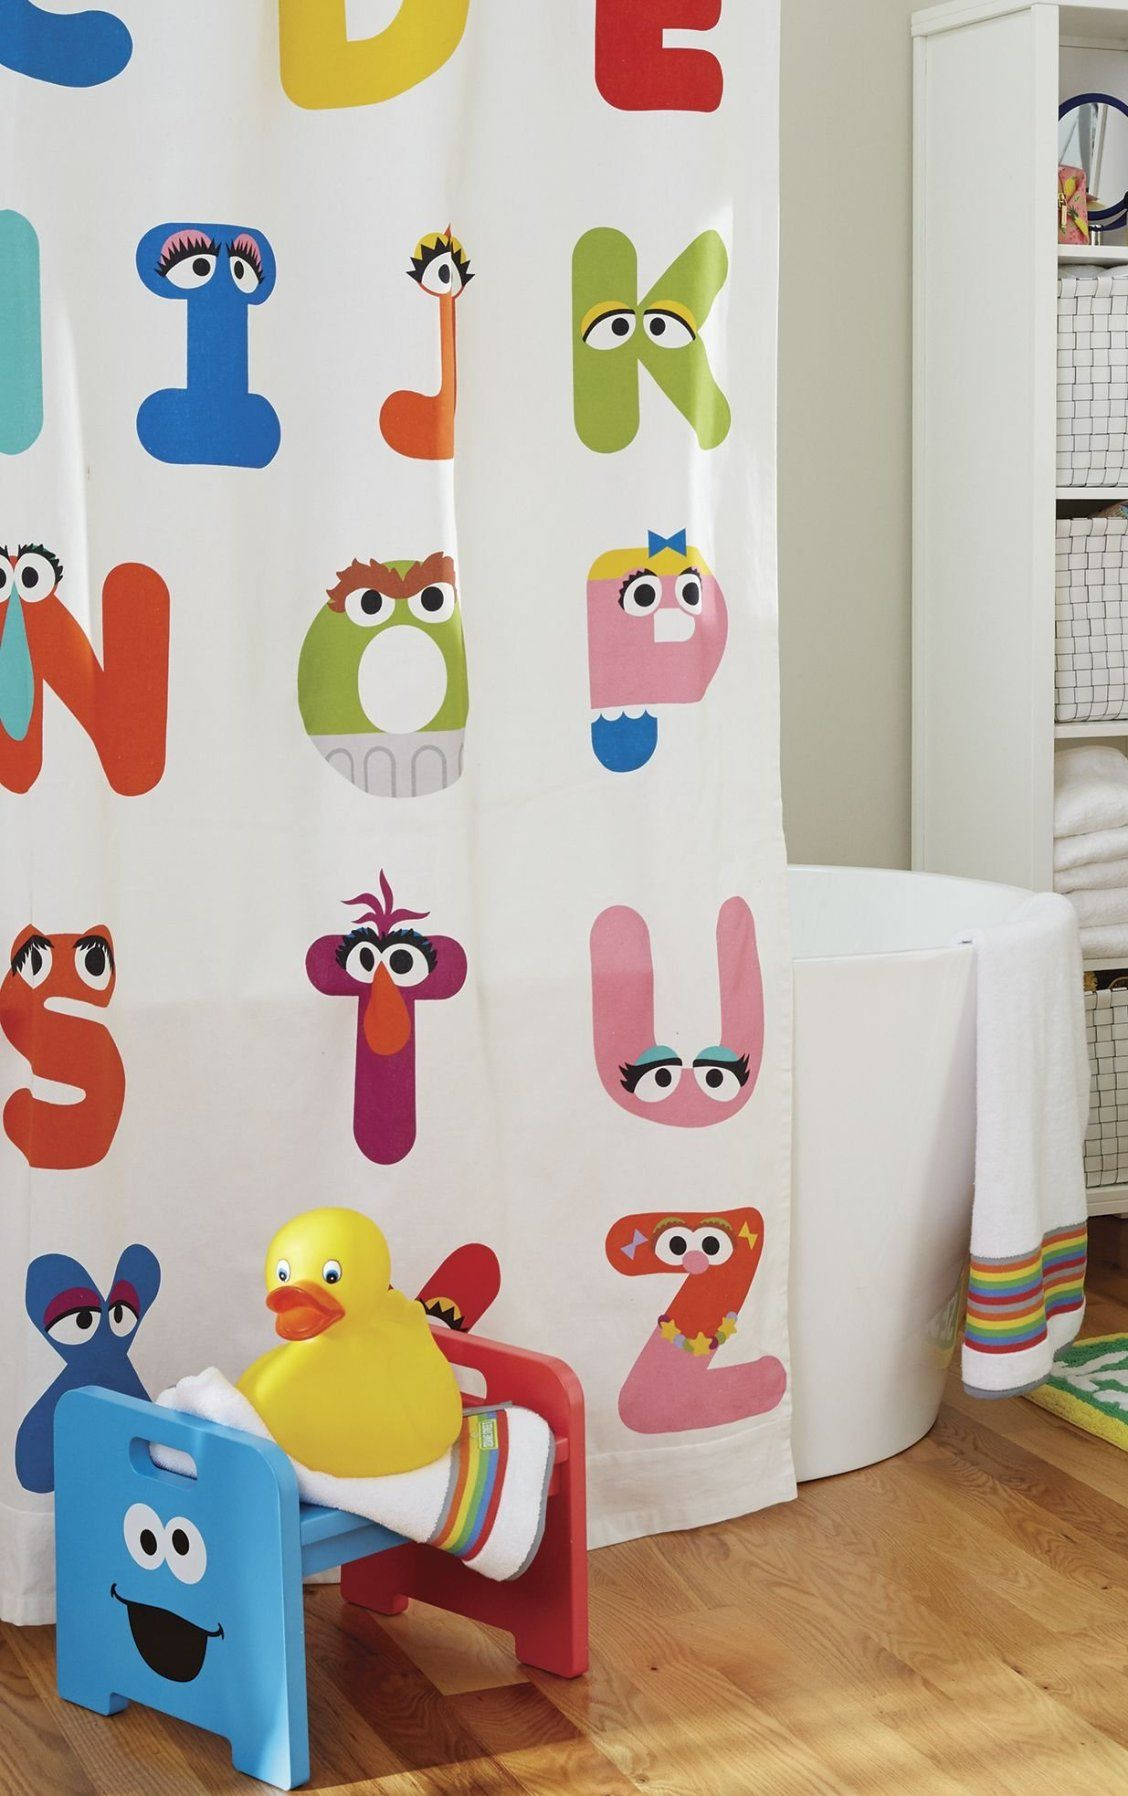 With Our ABC Sesame Street Shower Curtain Little Ones Can Learn The Alphabet While Getting Squeaky Clean Made From 100 Cotton And Conveniently Machine